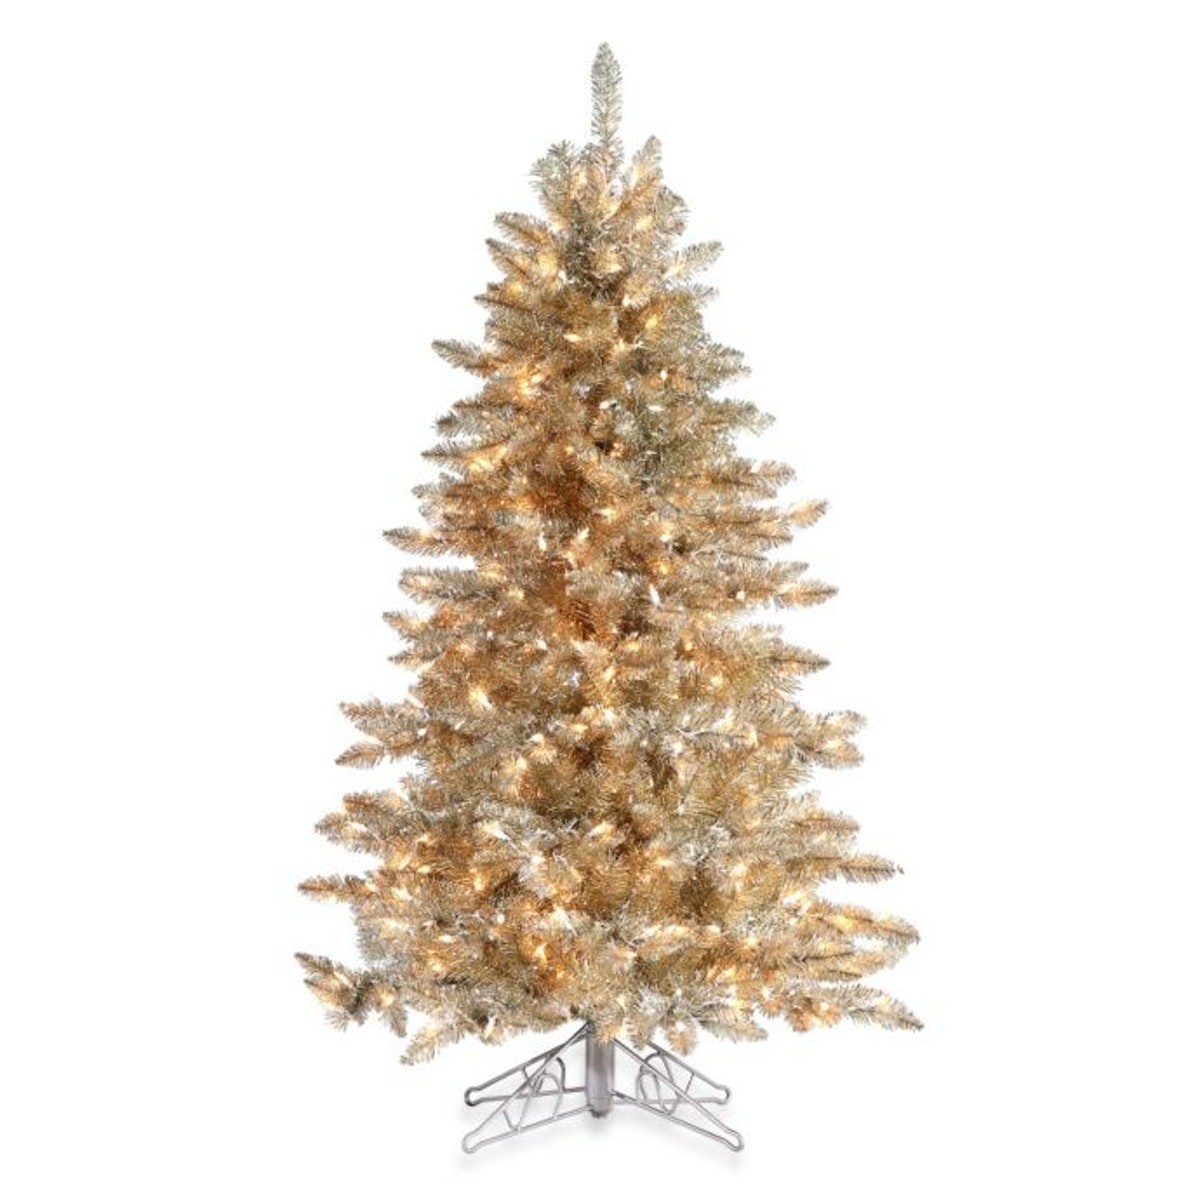 7 1/2-Foot Hard Needle Frosted Pre-Lit Artificial Columbus Pine Tree